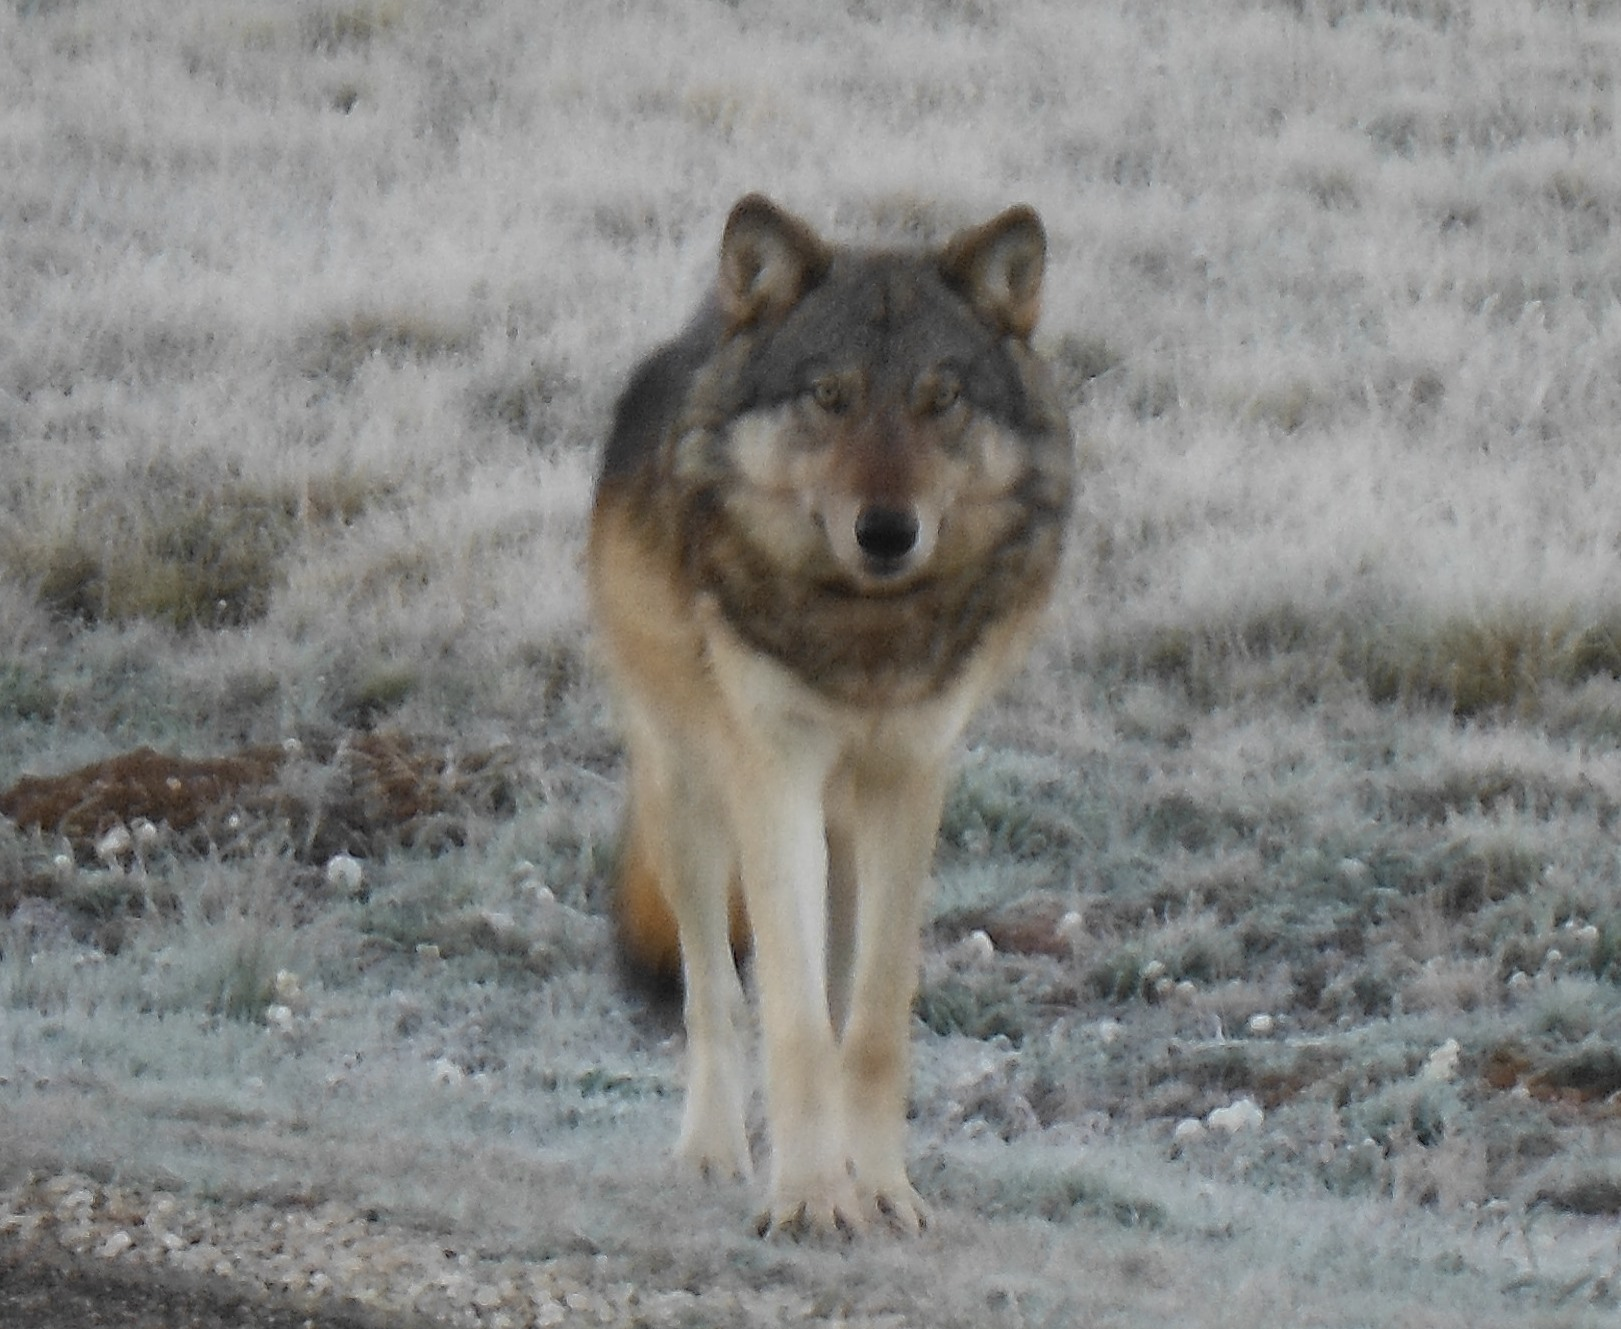 North Rim Wolf-NPS via Crumbo